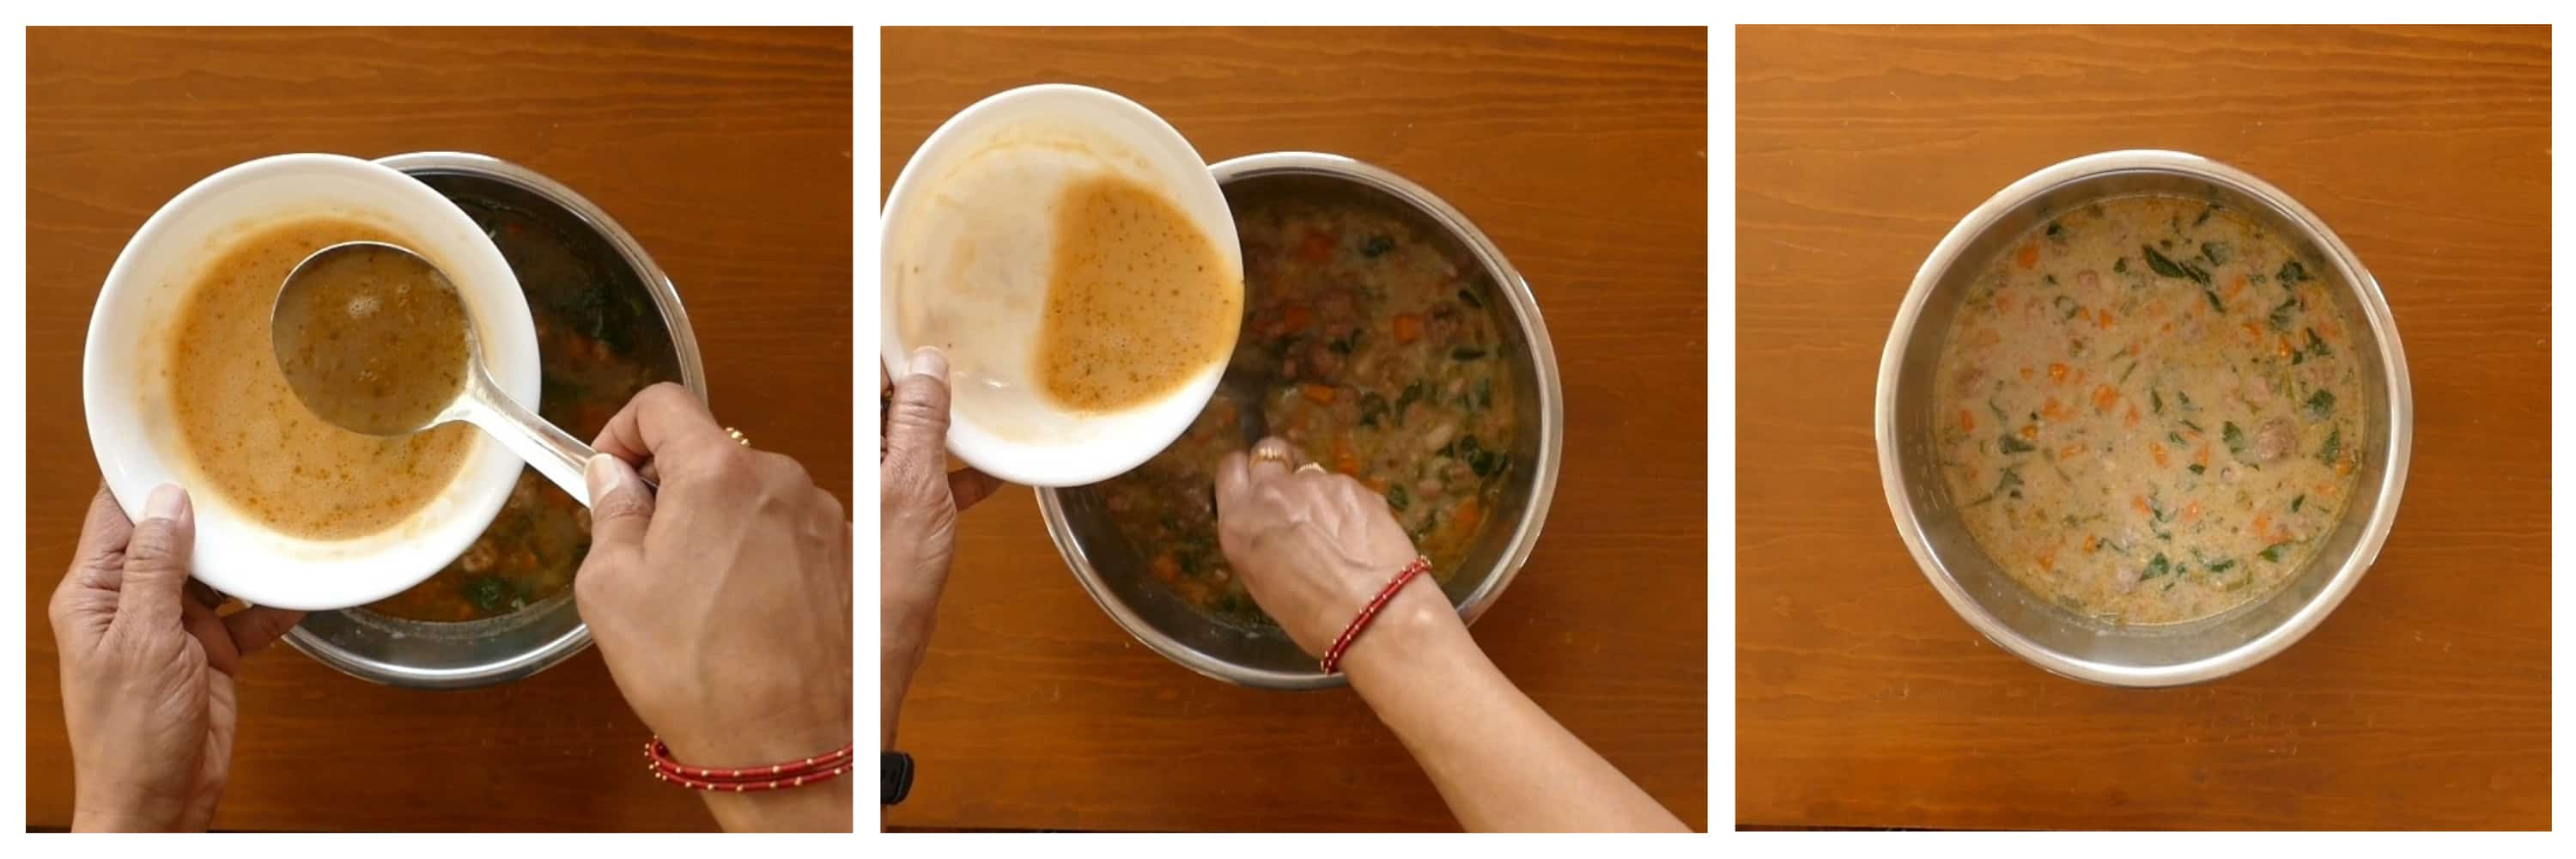 Instant Pot Italian Wedding Soup Instructions - stir broth into beaten eggs, pour egg mixture into soup in inner pot, stirred - Paint the Kitchen Red